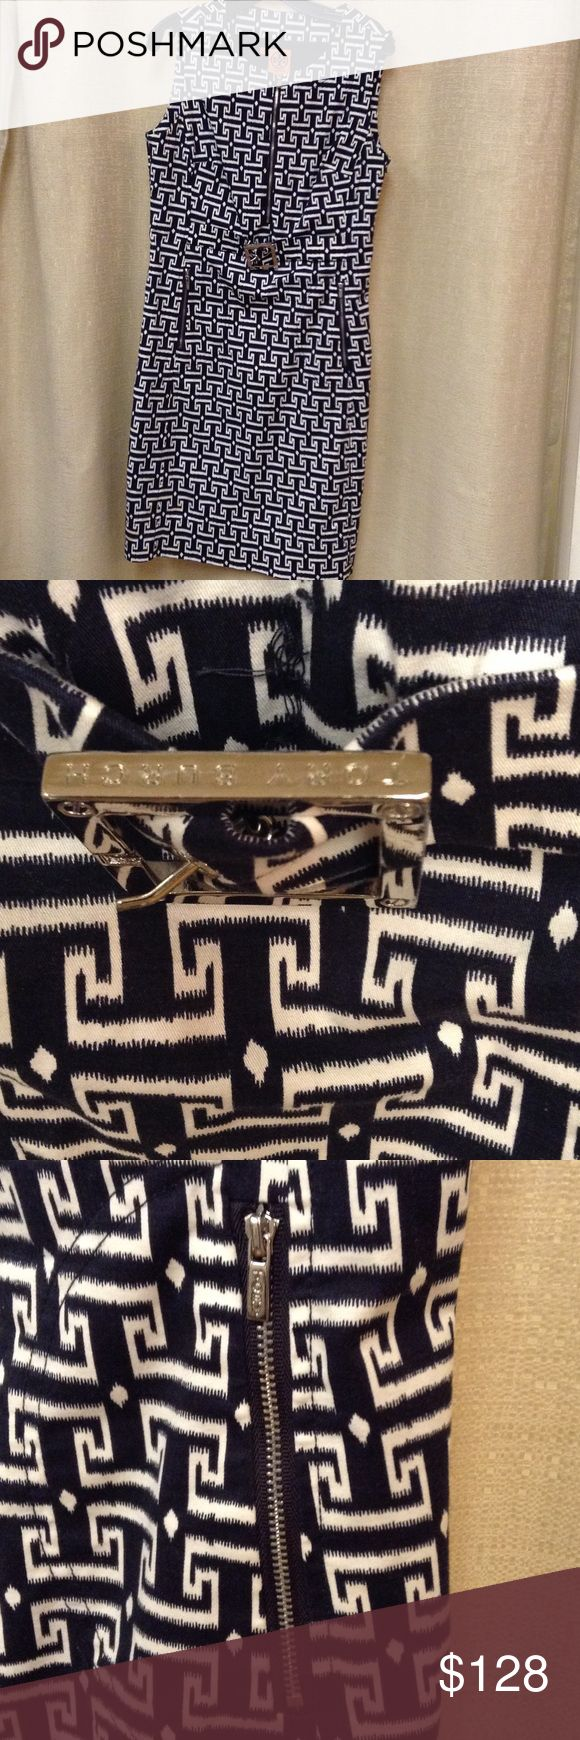 Dress Sleeveless navy and white dress with attached belt Tory Burch Dresses